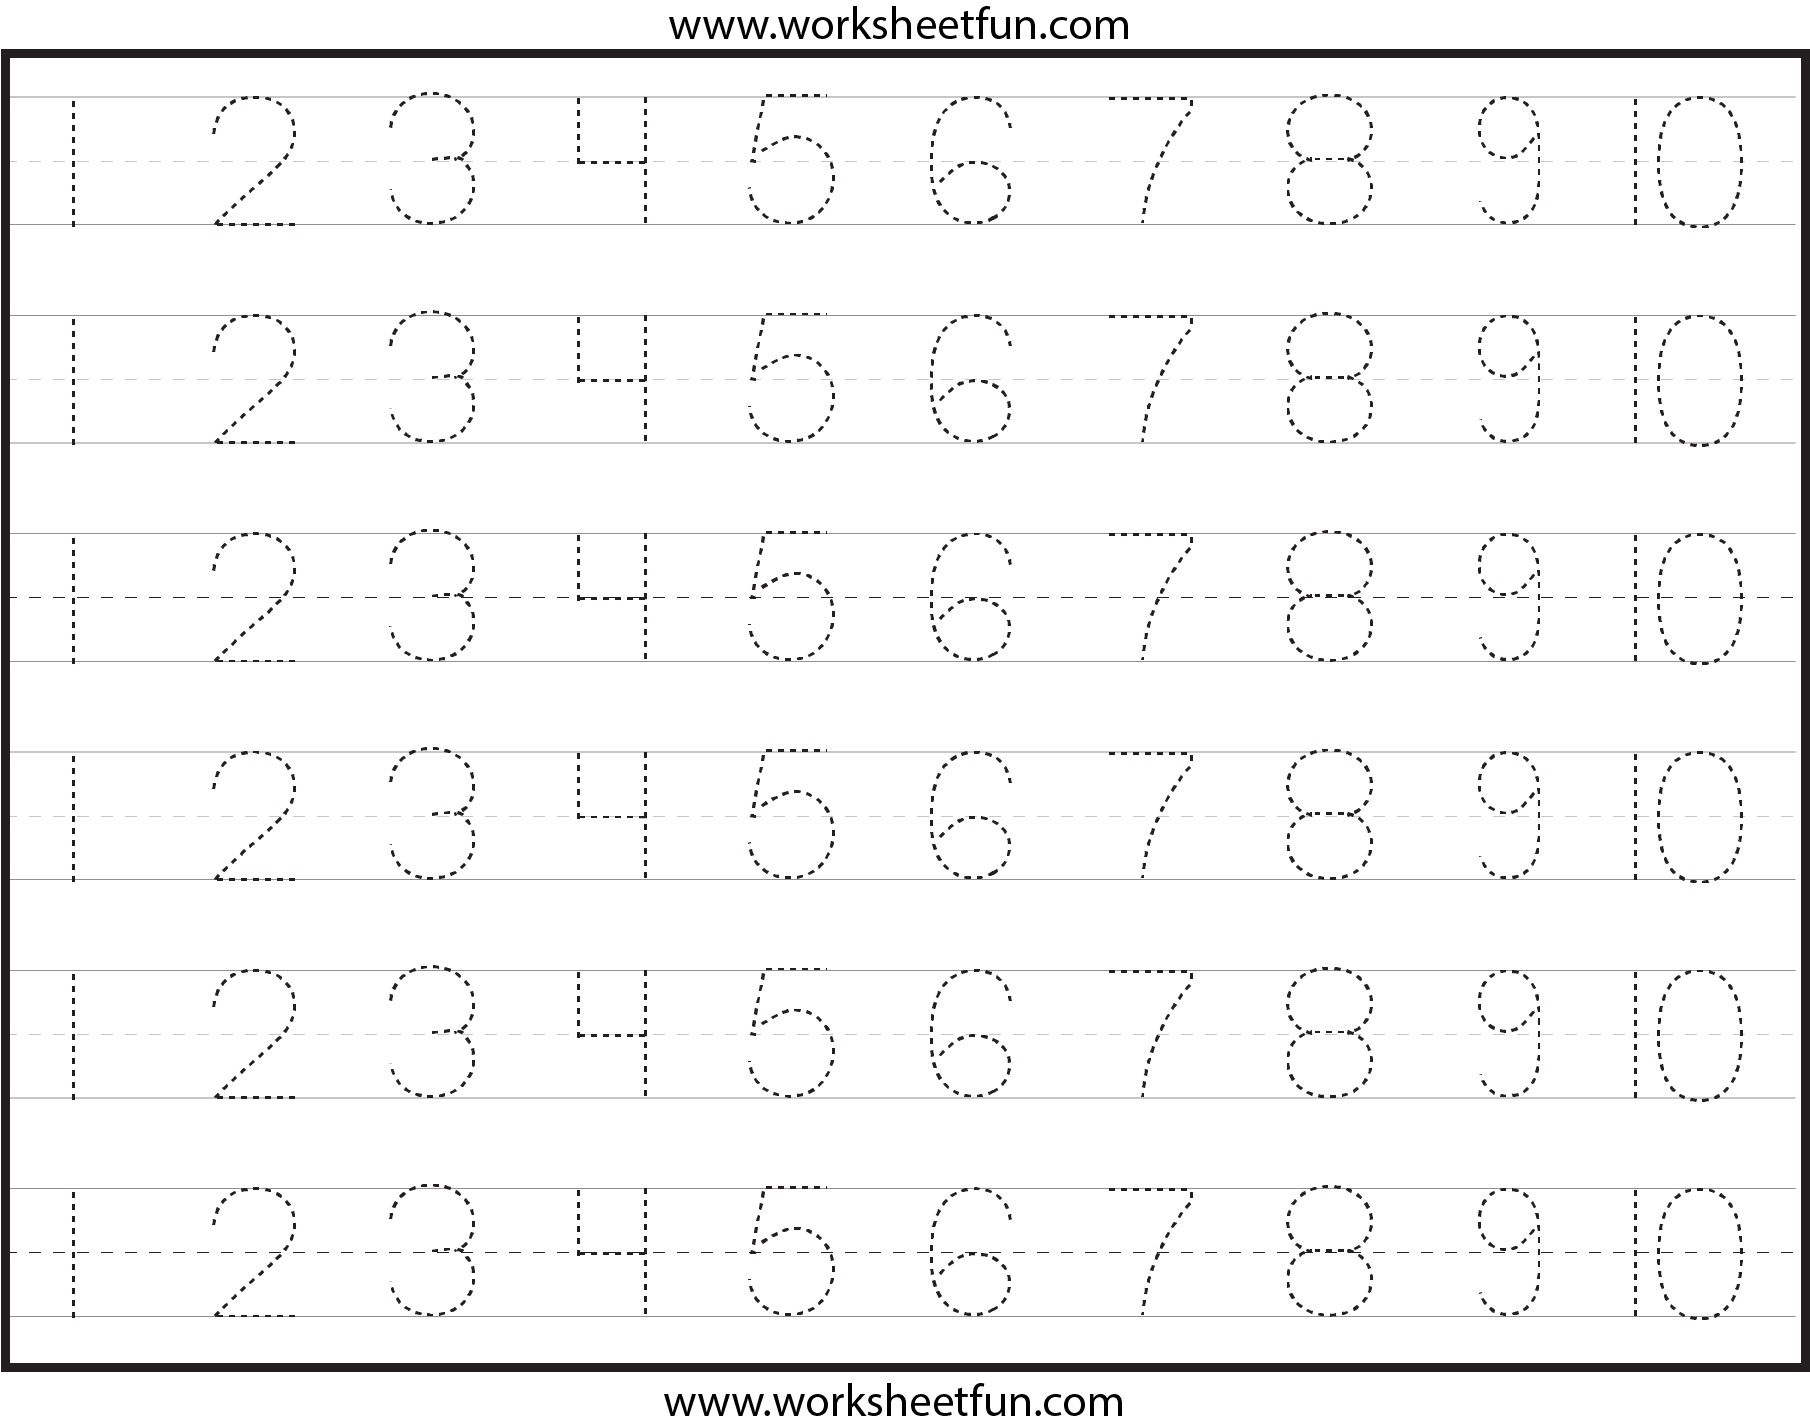 Number-Tracing-Lines-Box-3 1,810×1,428 Pixels | Tracing pertaining to Abc 123 Tracing Worksheets